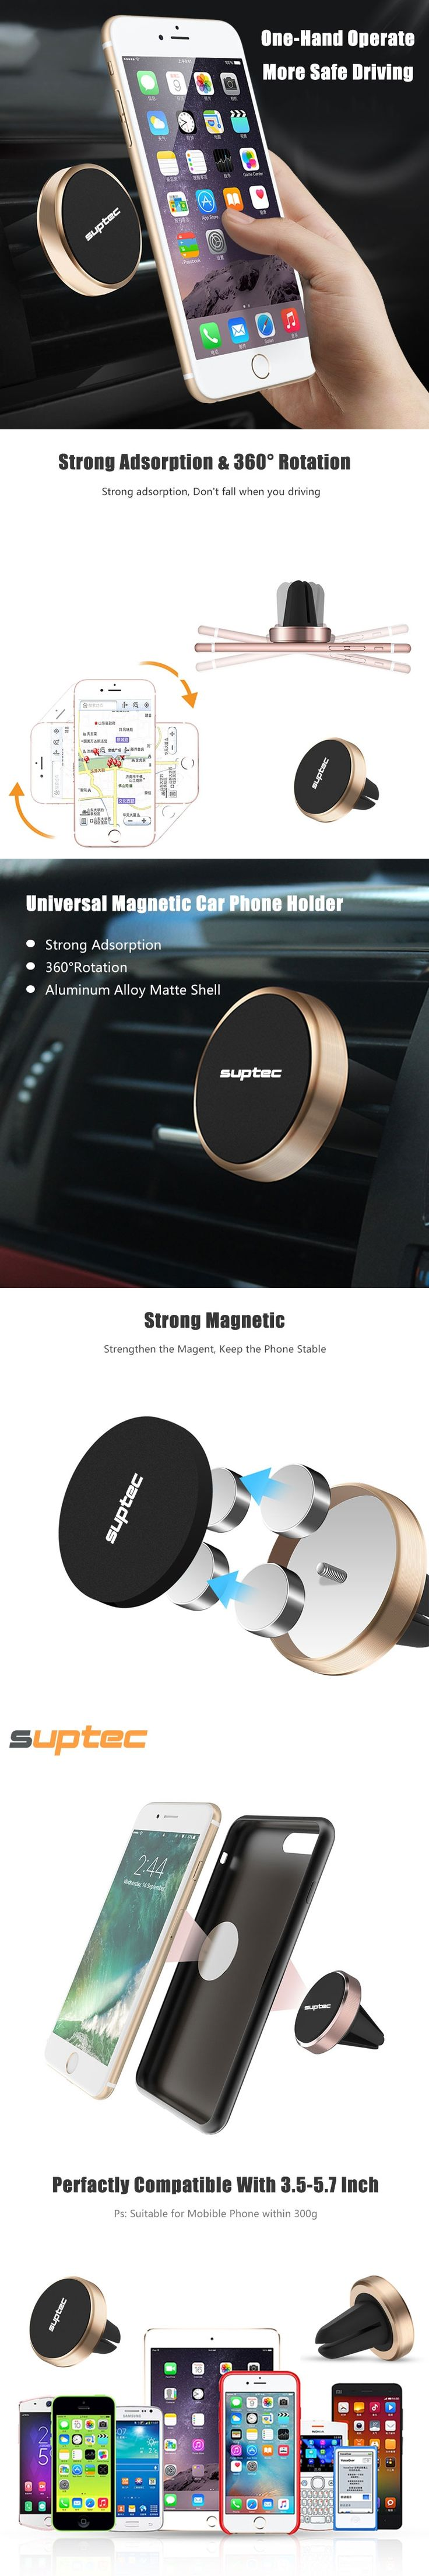 Universal Magnetic Car Phone Holder for iPhone 7 6s 6 plus Samsung S8 GPS Mobile Phone Holder Air Vent Holder Stand Car Holder